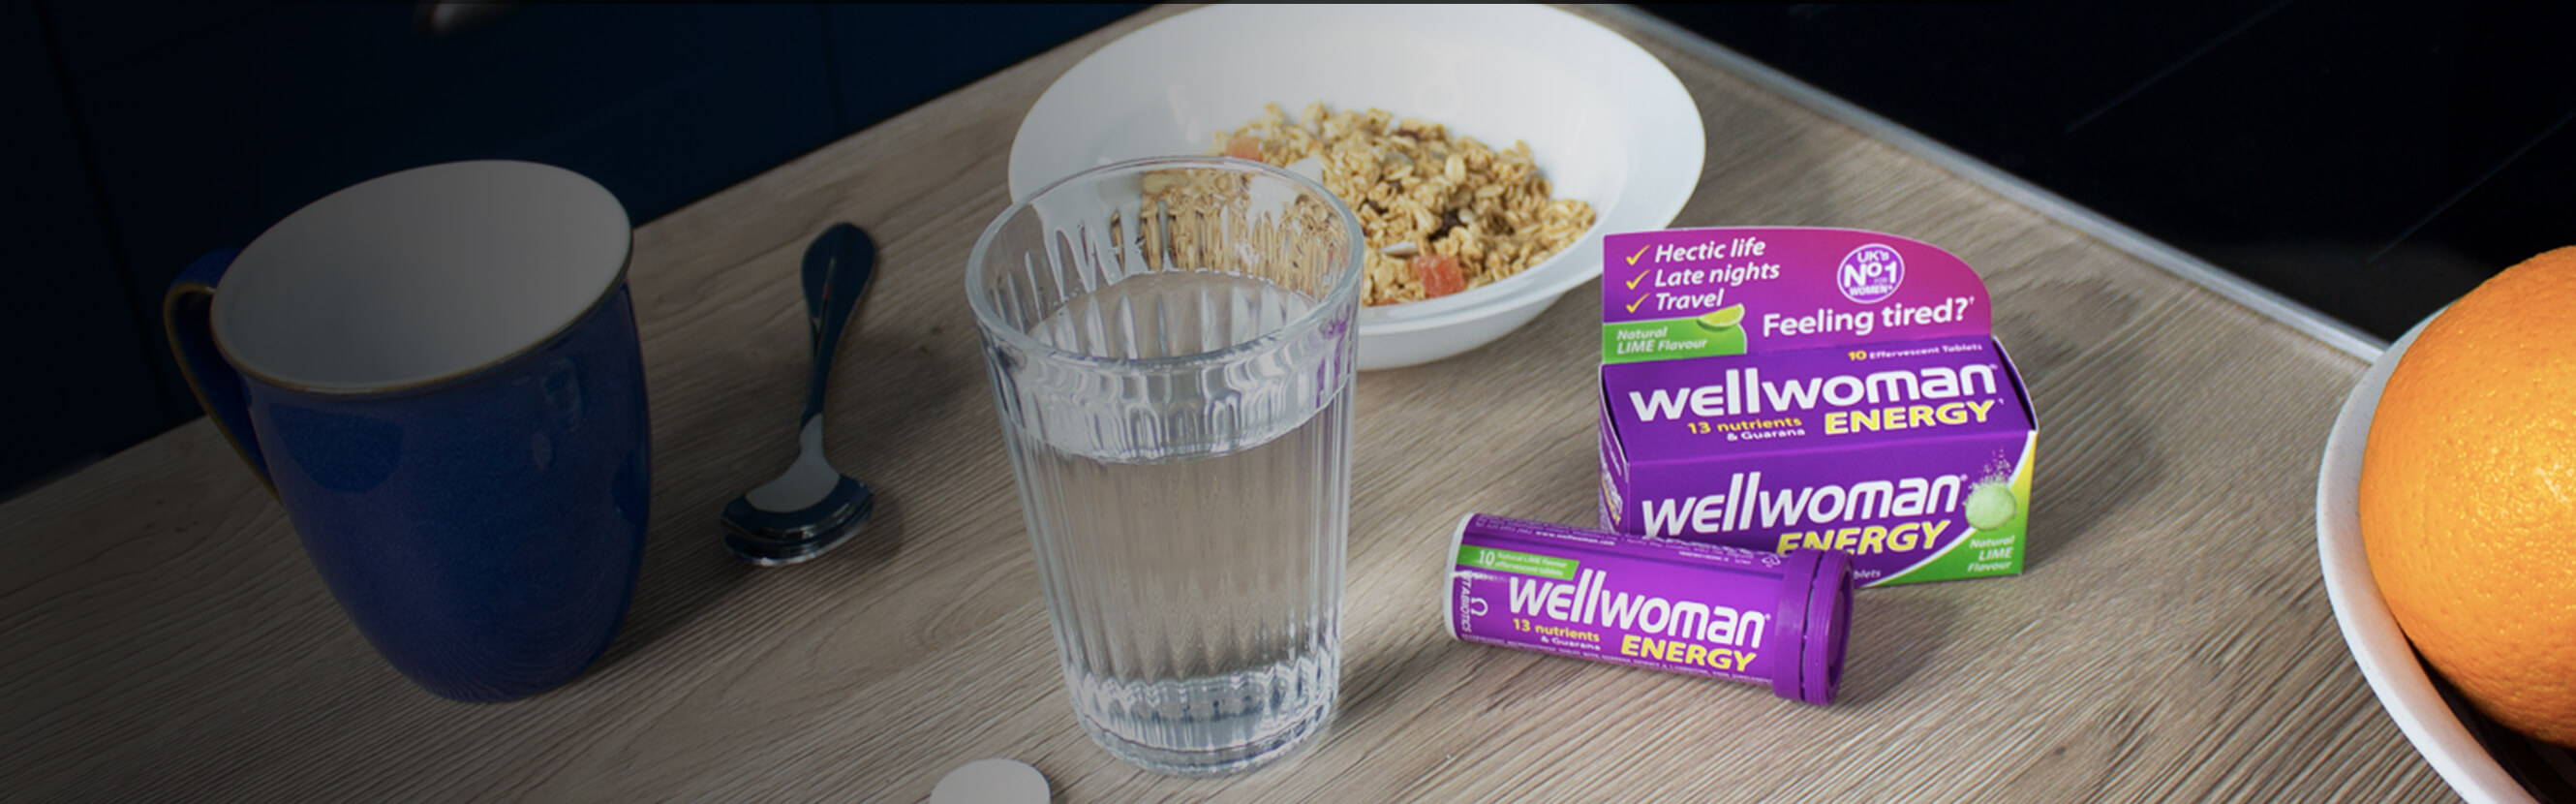 Wellwoman Energy Next To A Breakfast